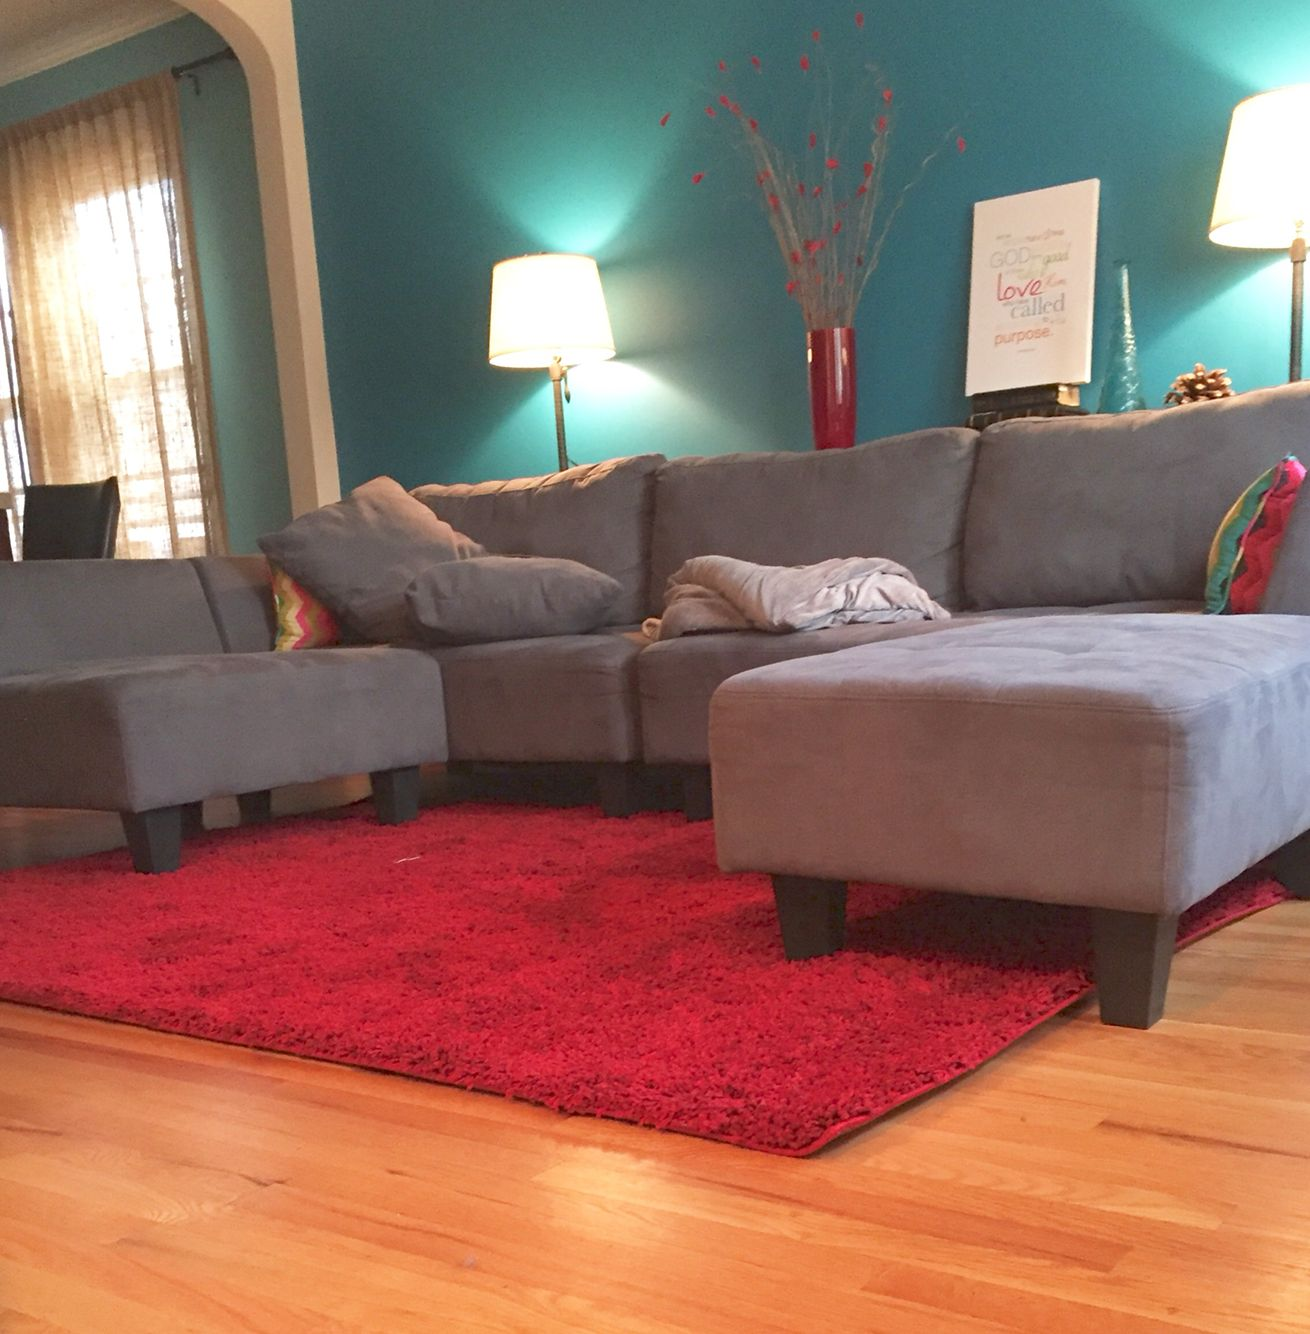 Living Room Idea: Teal Blue Wall, Grey Couch, Ruby Red Rug